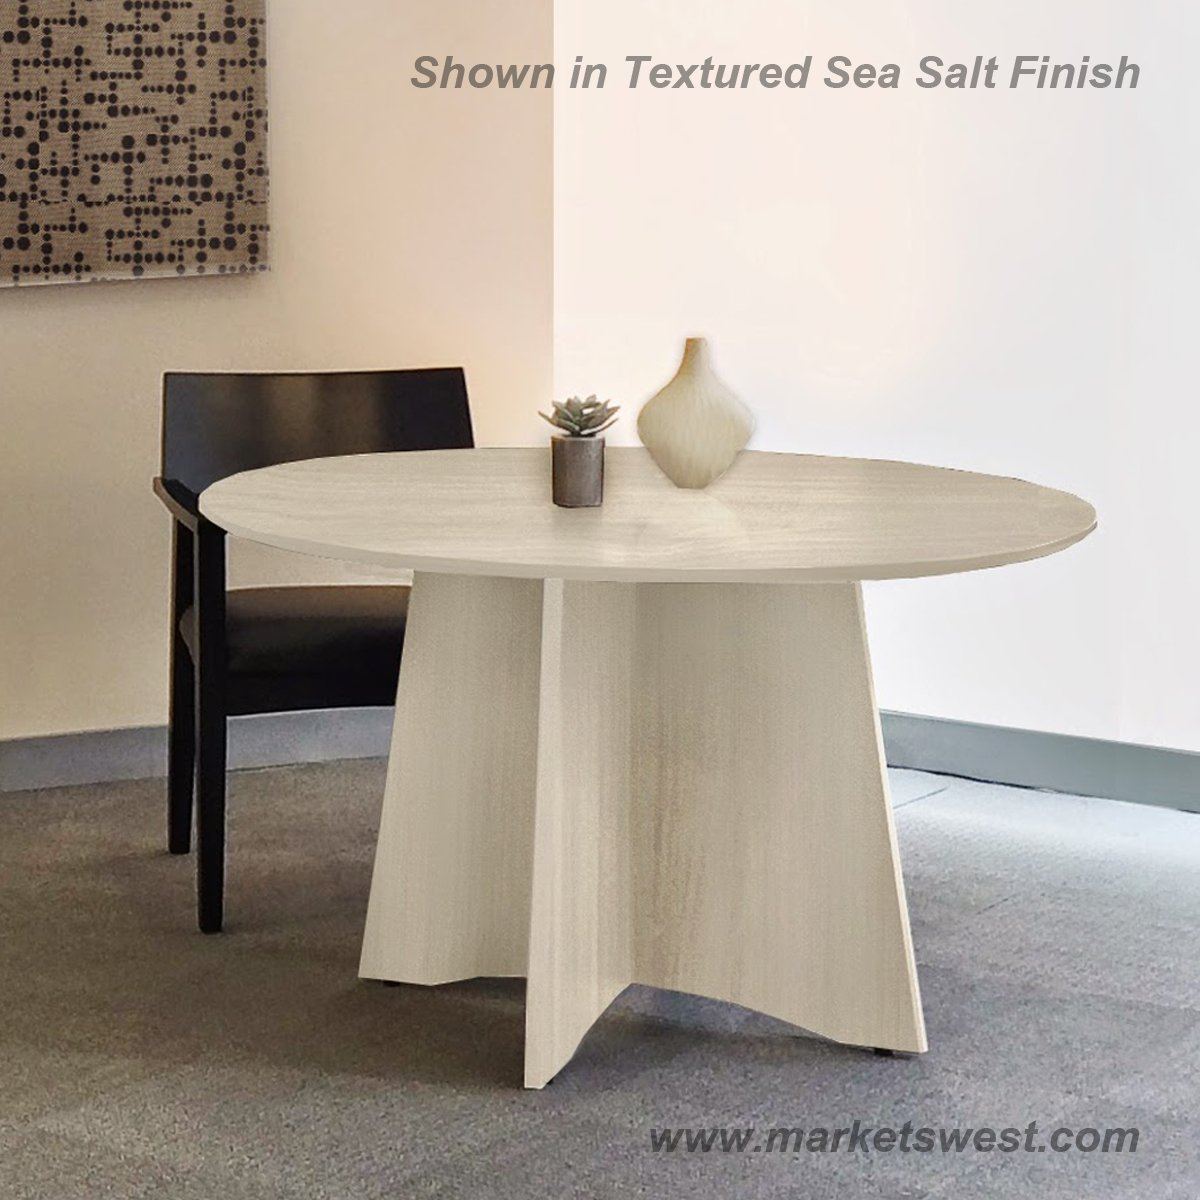 Awesome Markets West Office Furniture